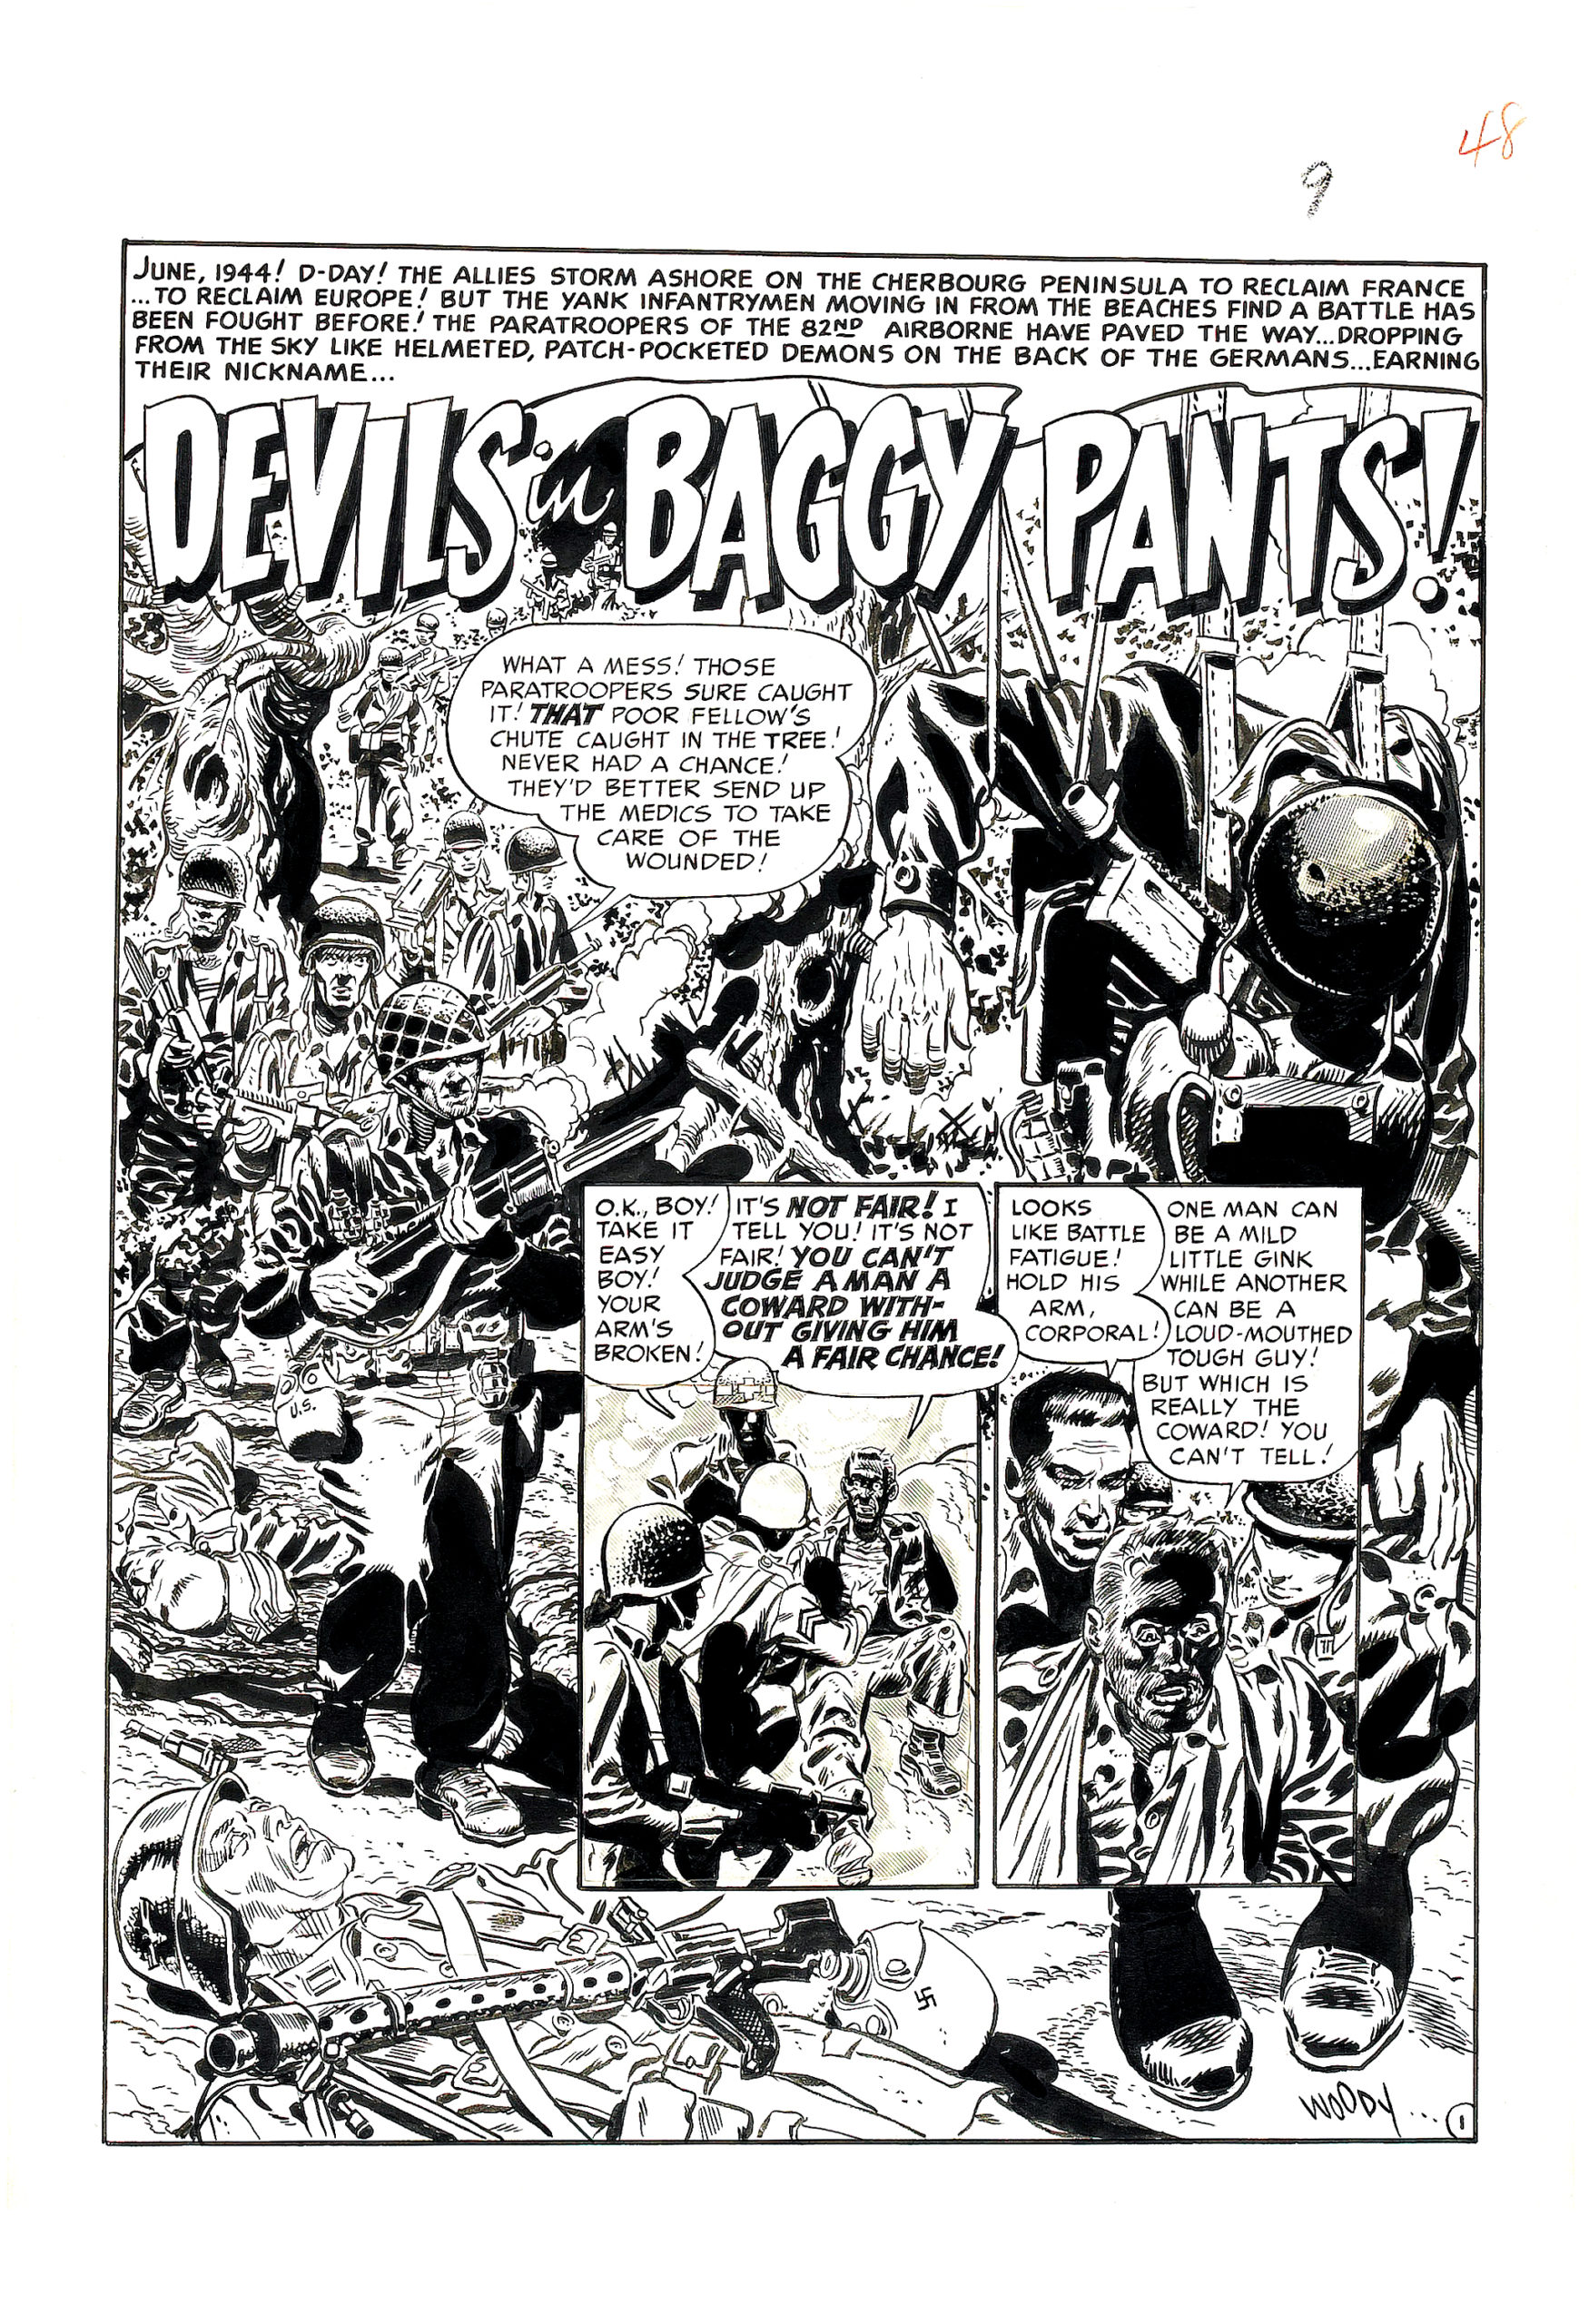 Wallace Wood – Devils in Baggy Pants